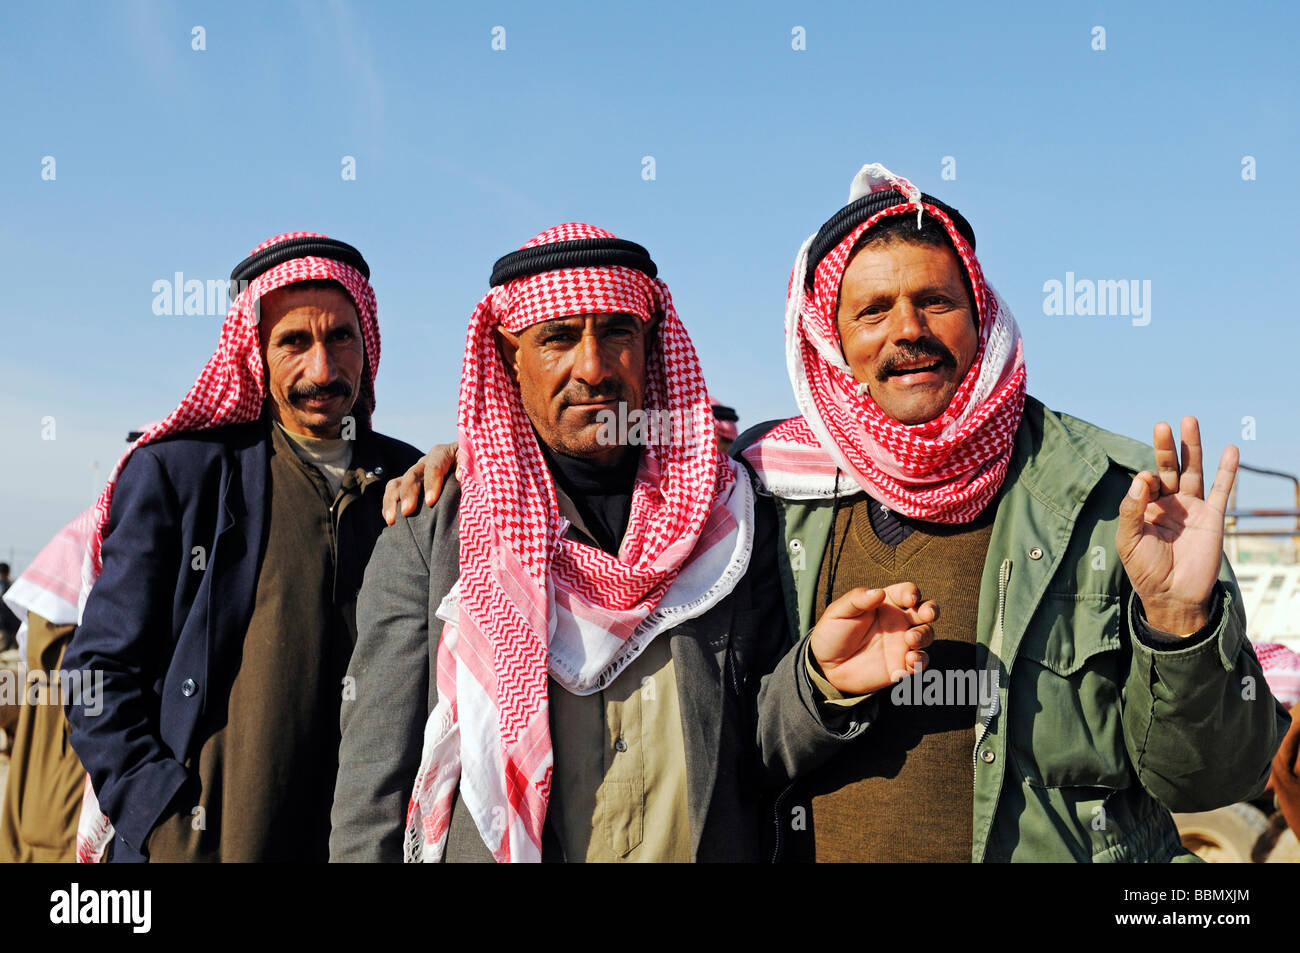 Men on a market for sheep and goats, Kafseh, Syria, Asia - Stock Image